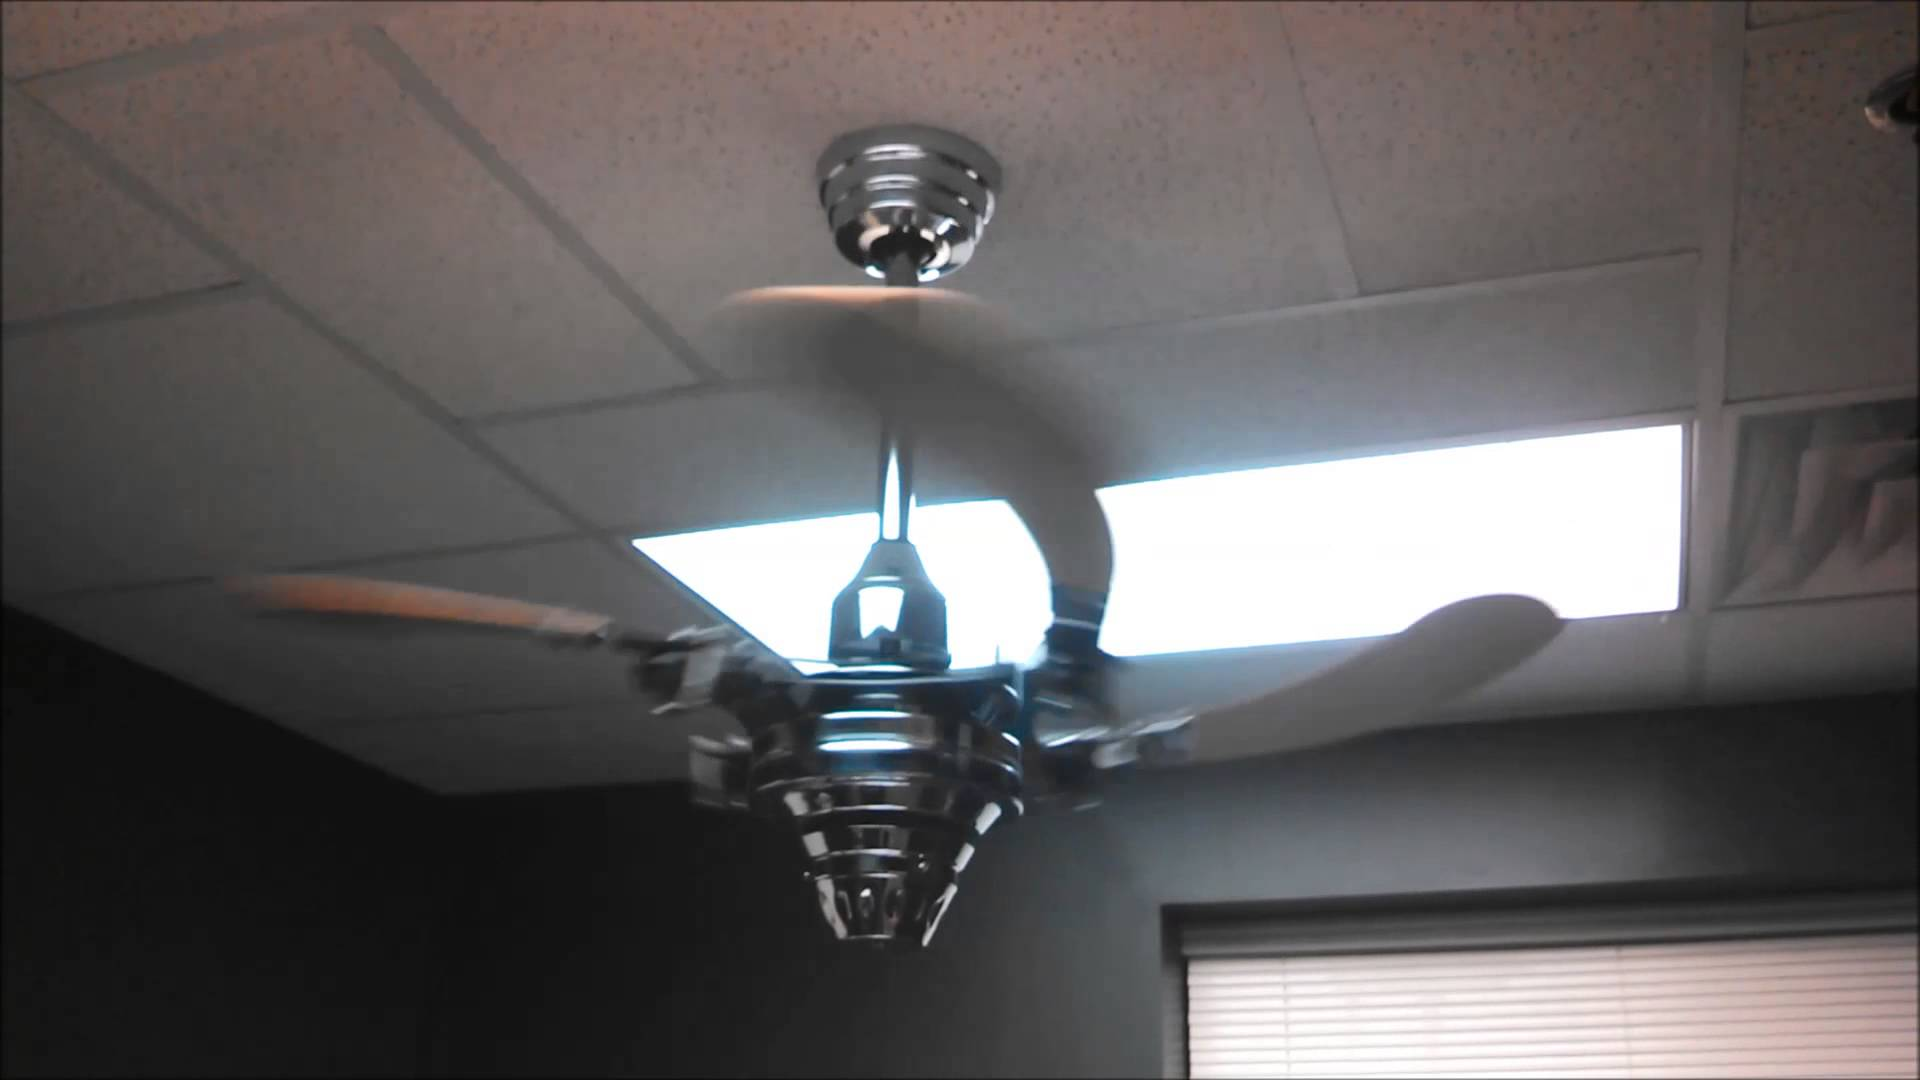 retractable fans for blade ceiling terrific awesome fan cool kb